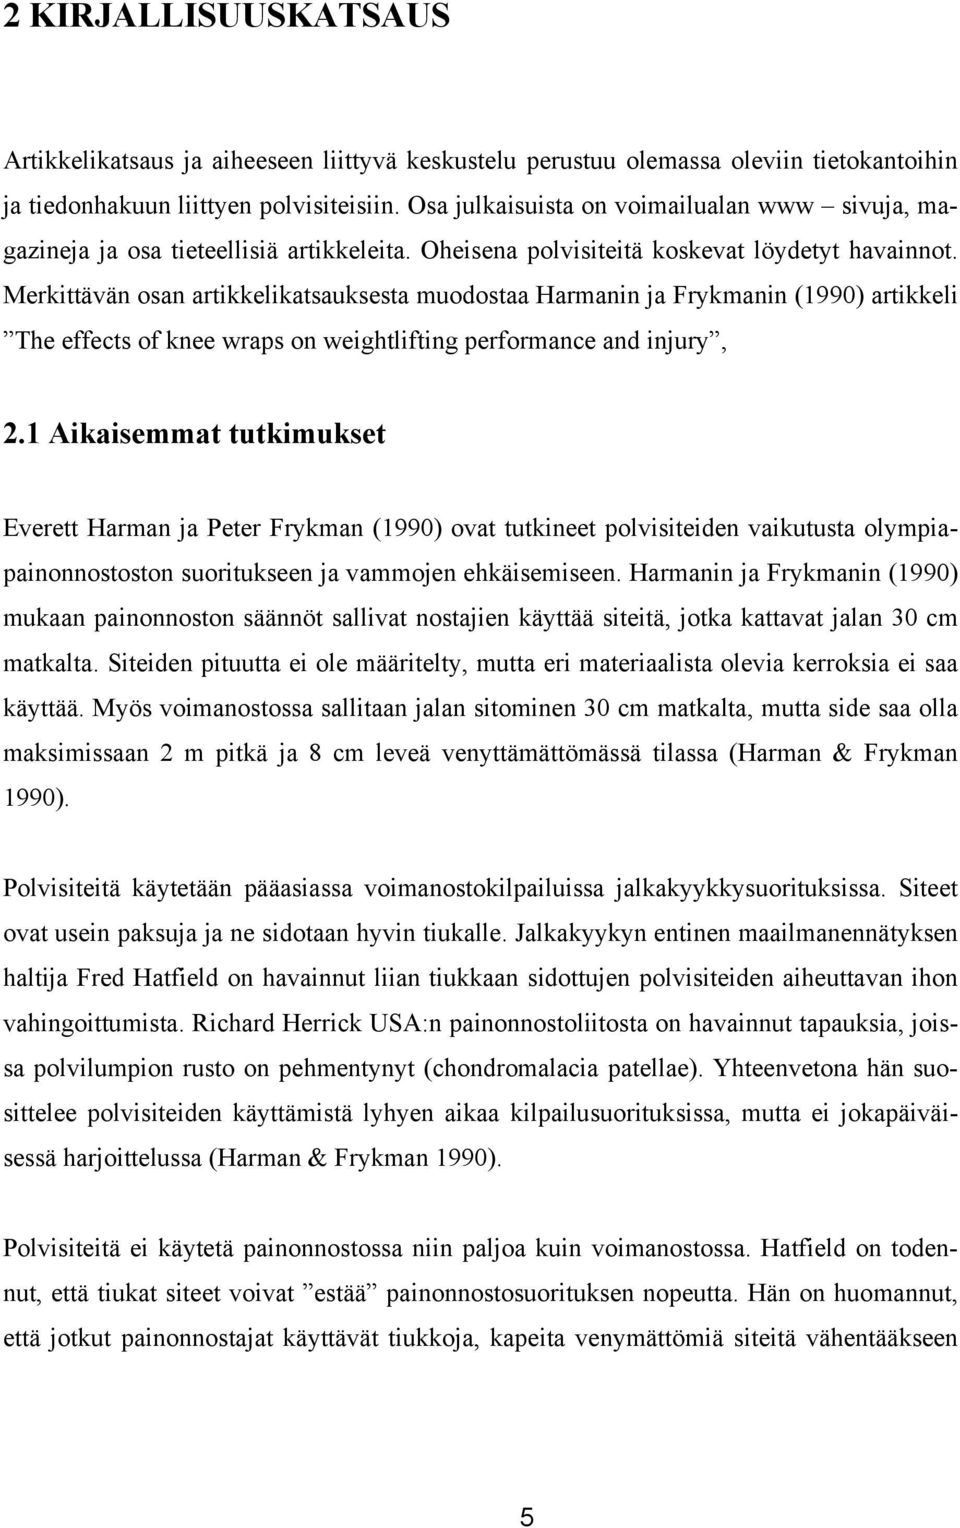 Merkittävän osan artikkelikatsauksesta muodostaa Harmanin ja Frykmanin (1990) artikkeli The effects of knee wraps on weightlifting performance and injury, 2.